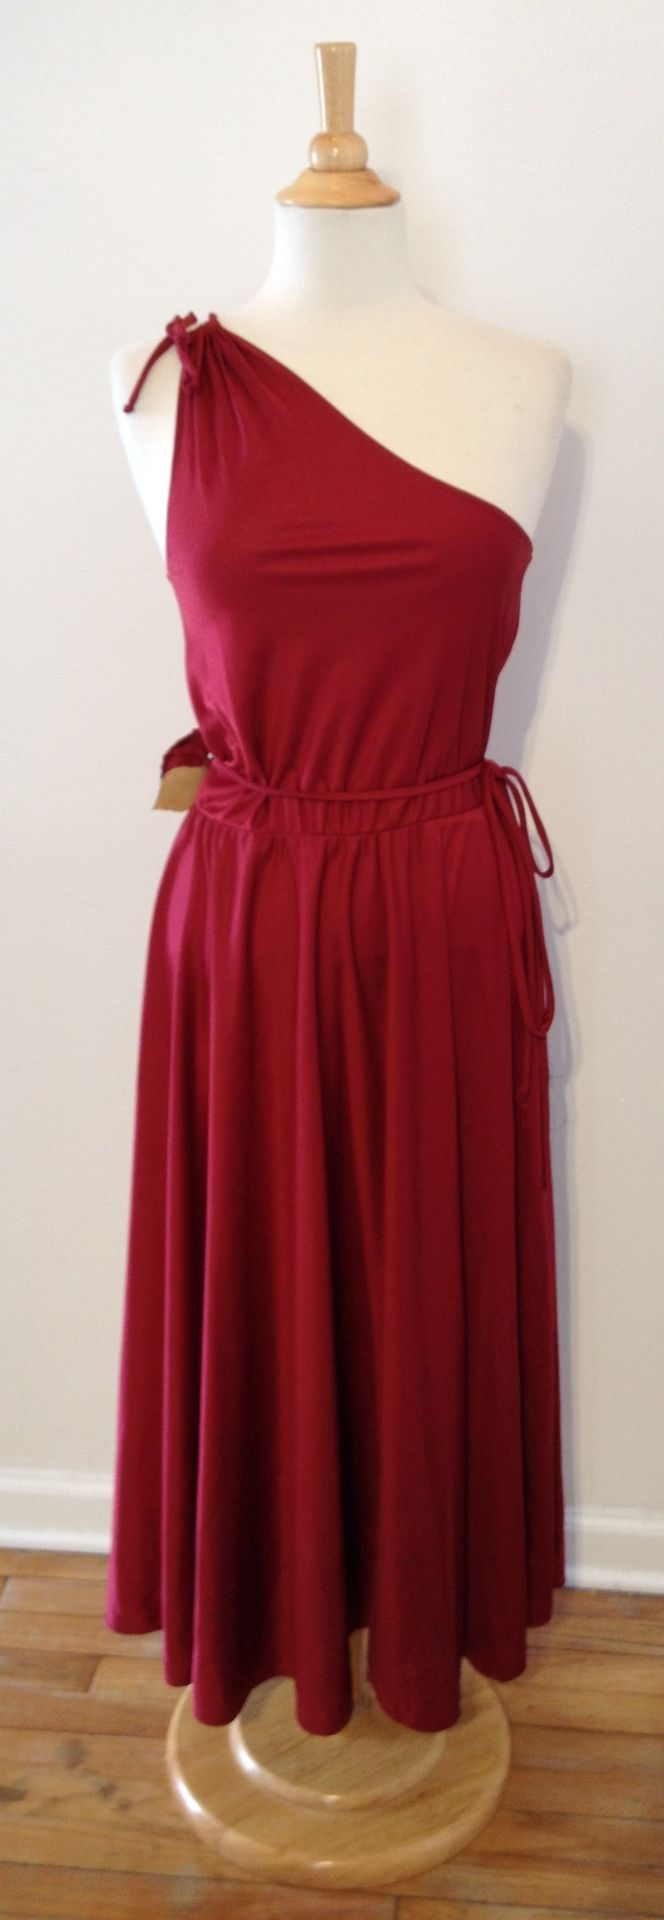 So many fun vintage designs! Click to #shop: http://stores.ebay.com/recycledcouture/ #ebaydeals #endingsoon #recycledcouture #fashion